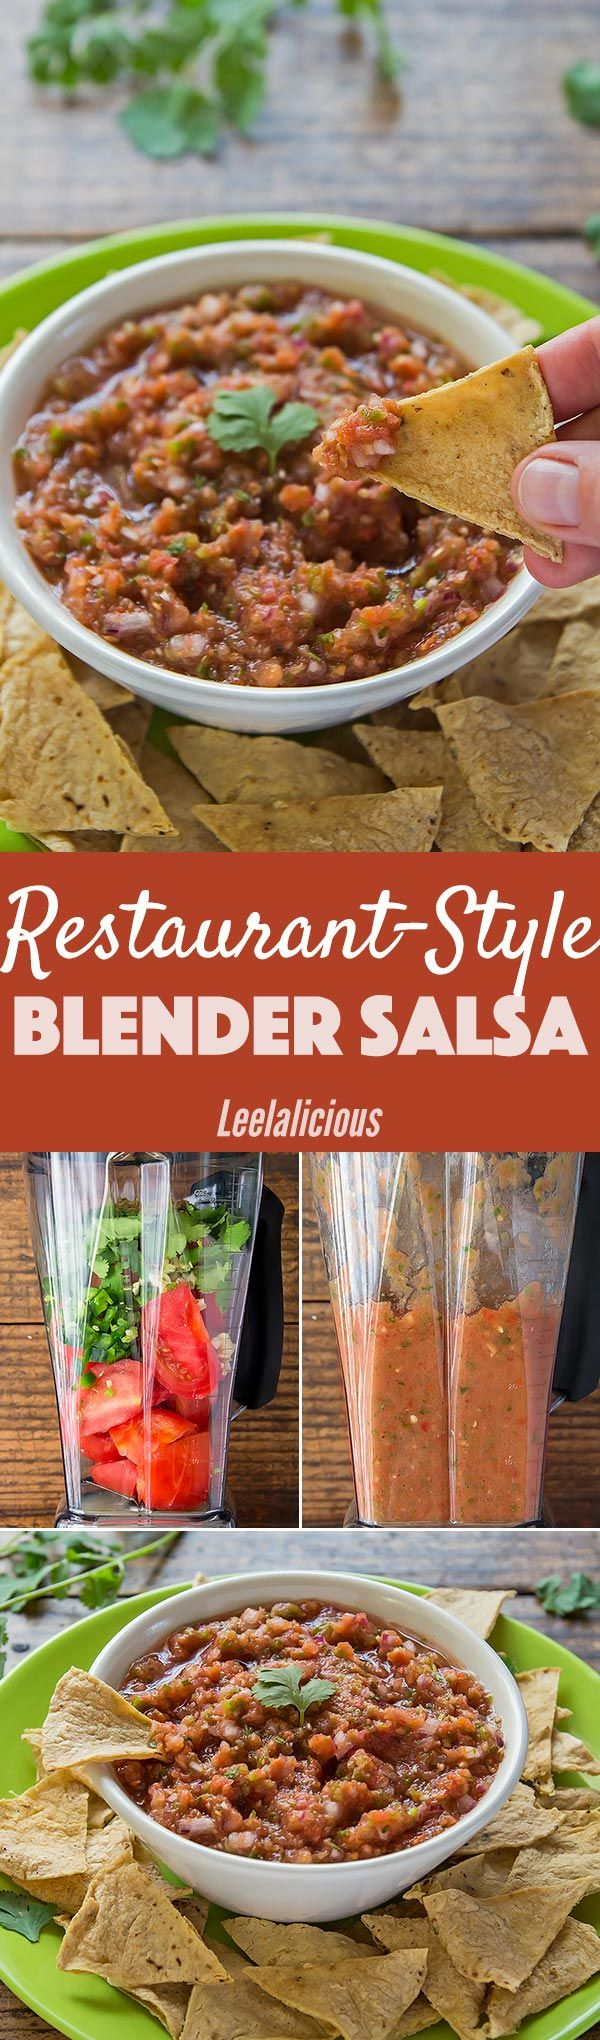 This easy restaurant-style salsa is made in the blender with healthy, fresh ingredients. It's great for dipping or to use in any Mexican recipes. Sponsored Appetizer | Condiment | Tomatoes